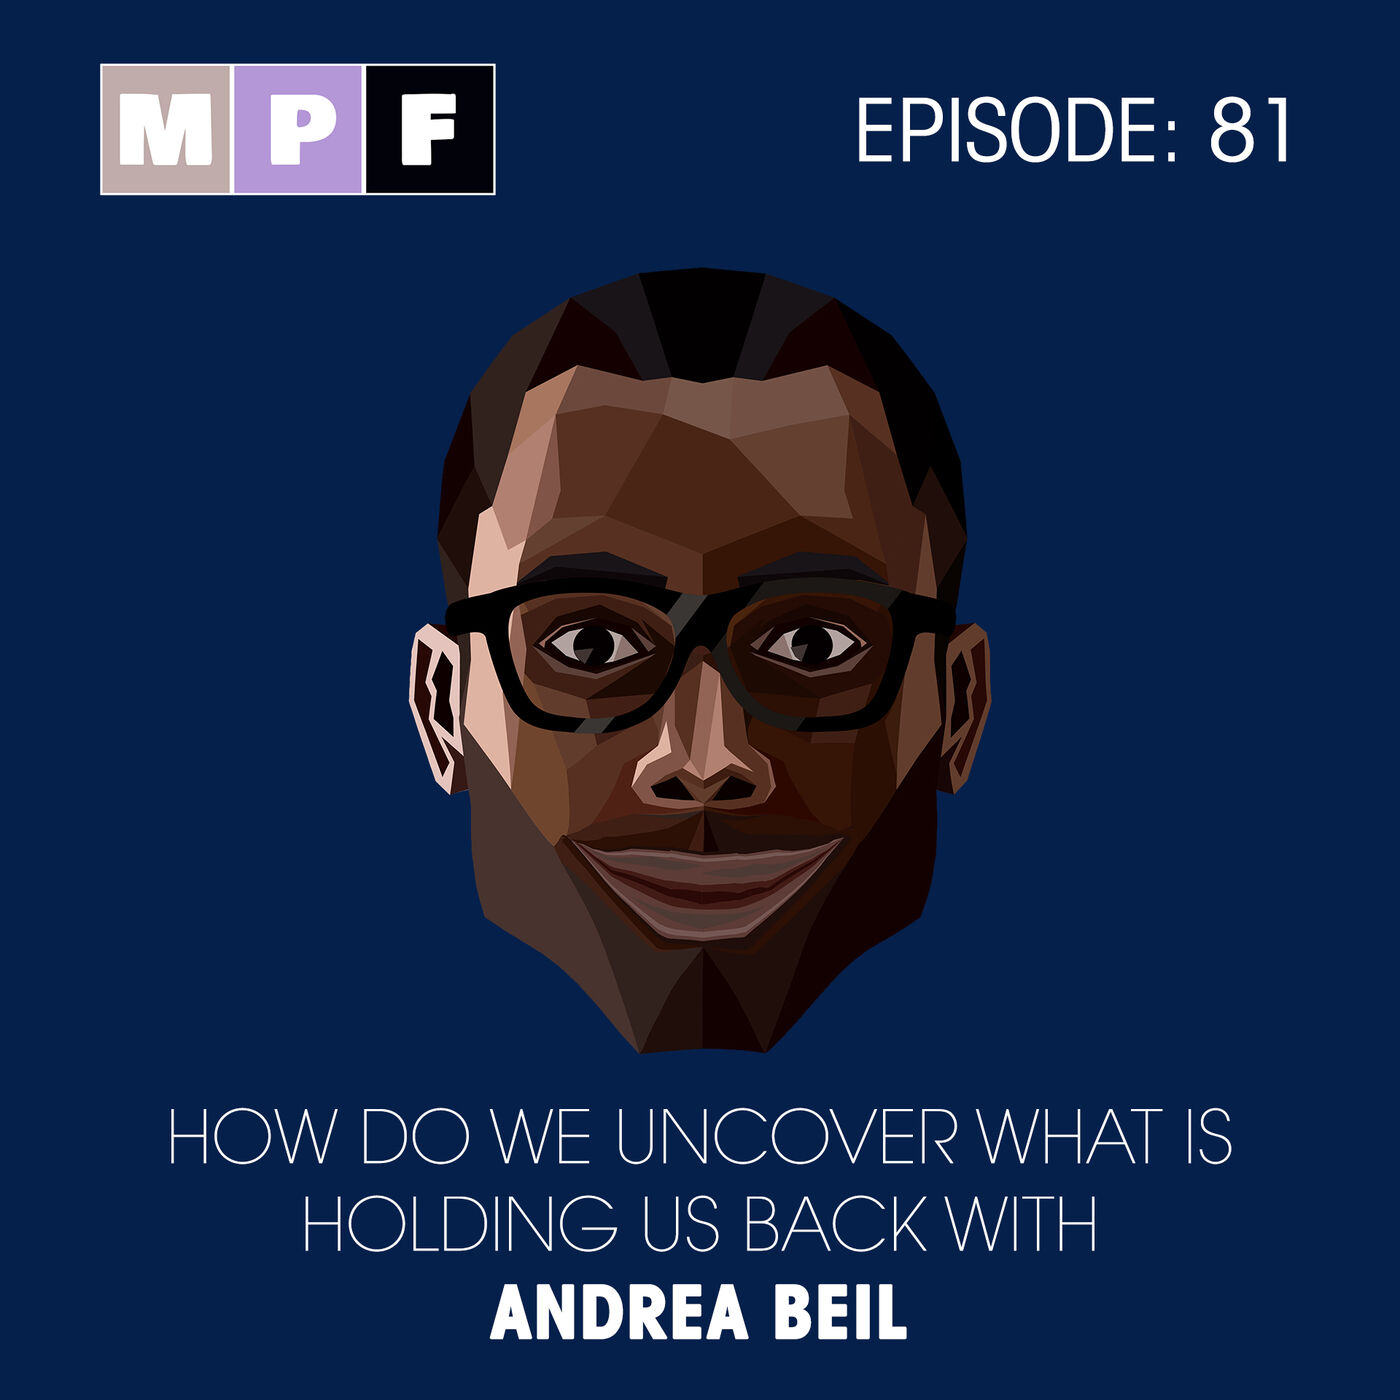 How Do We Uncover what Is Holding Us Back with Andrea Beil